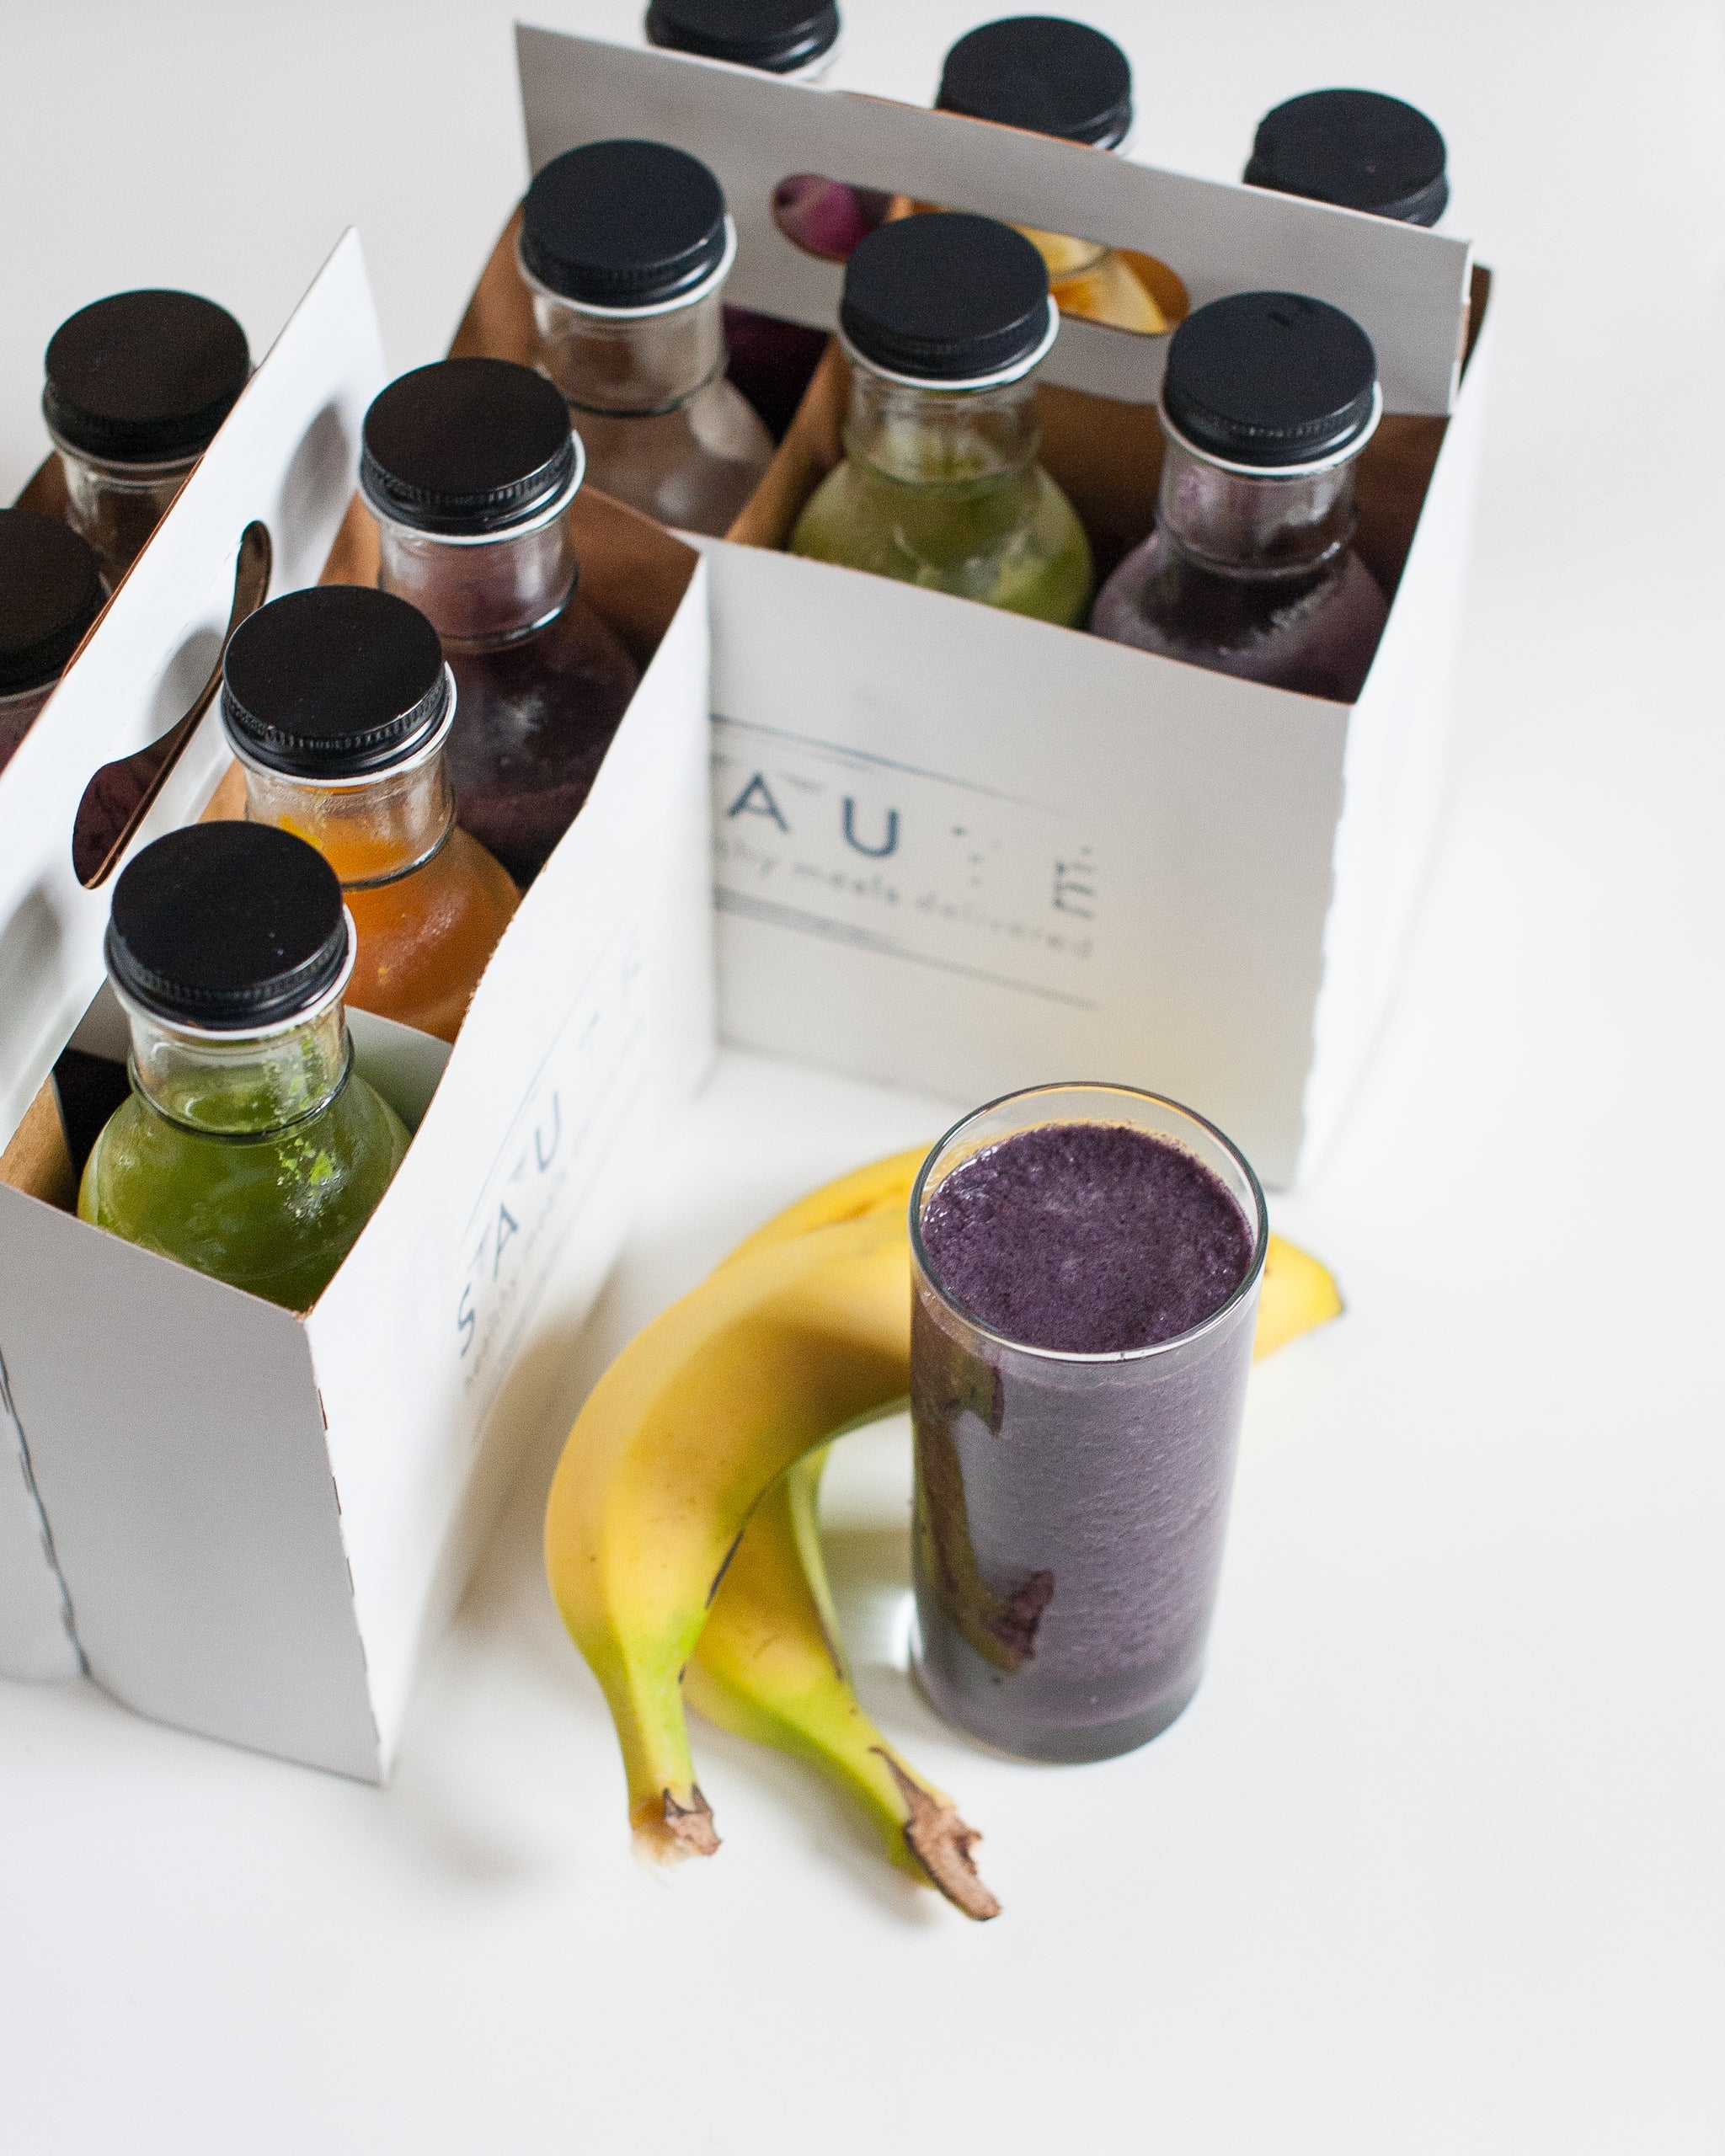 Monthly Smoothie Subscription - Sauté